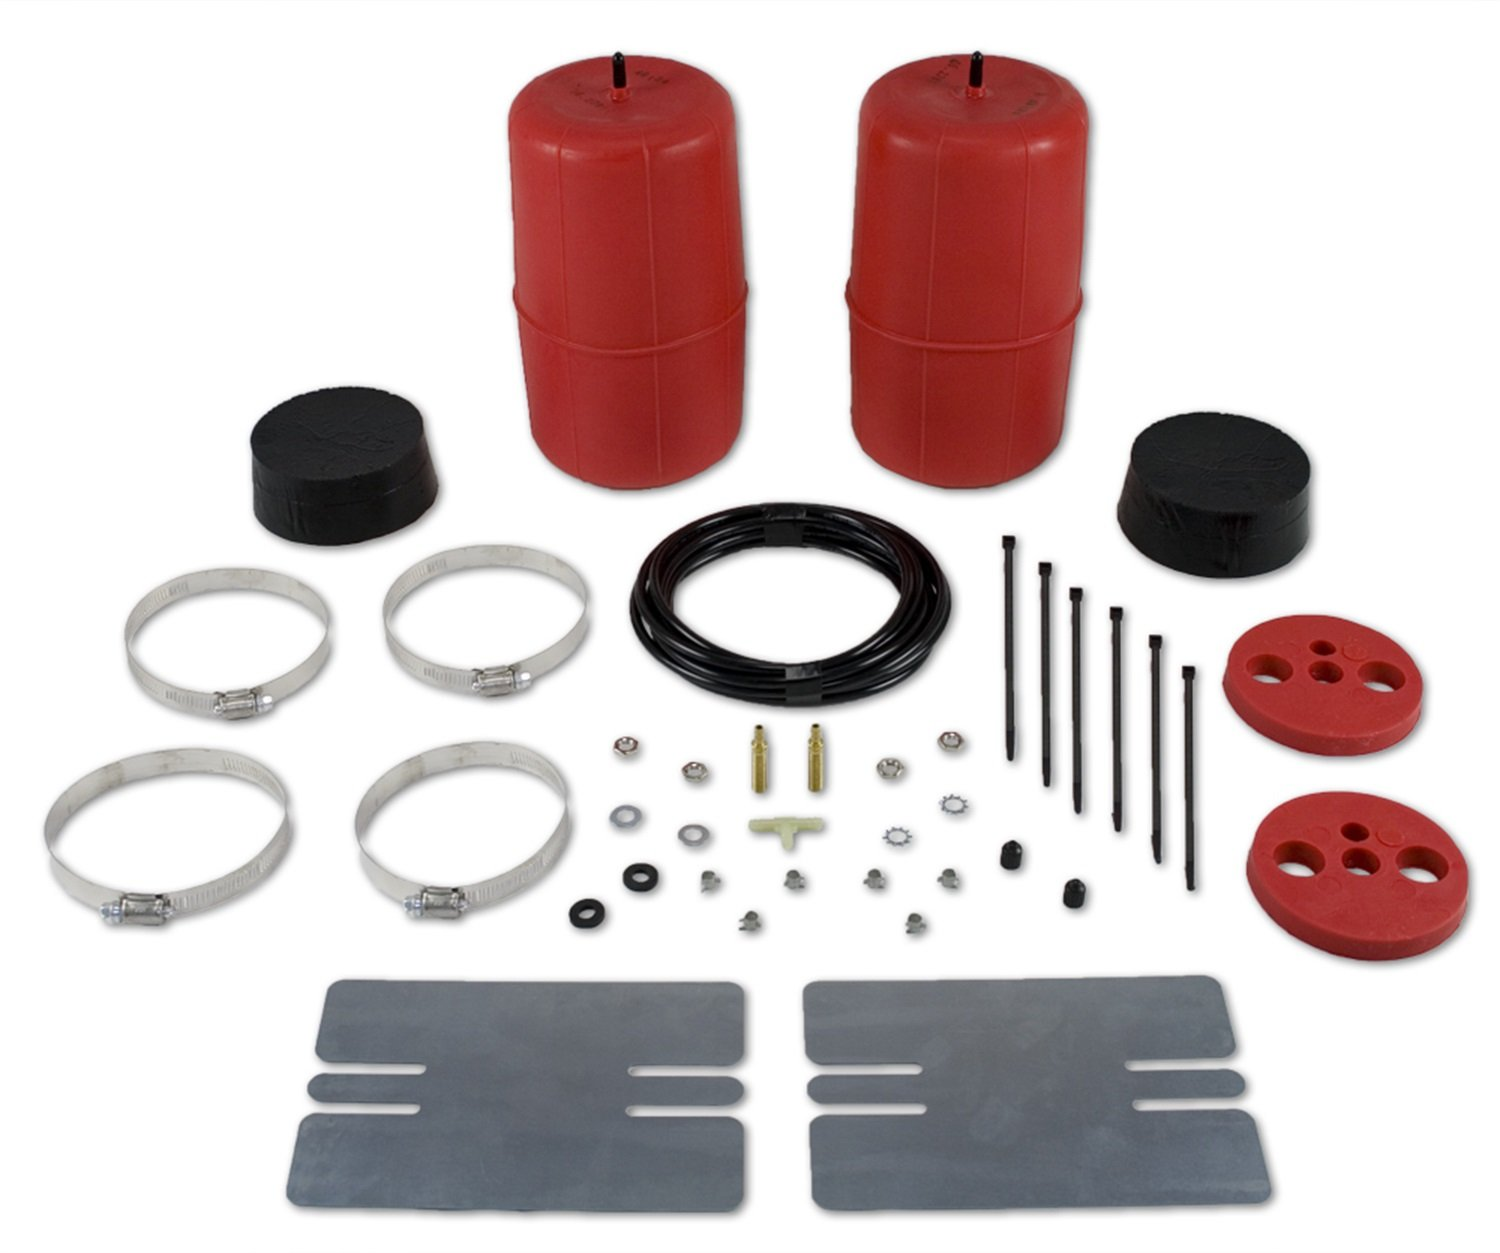 AIR LIFT 60747 1000 Series Rear Air Spring Kit